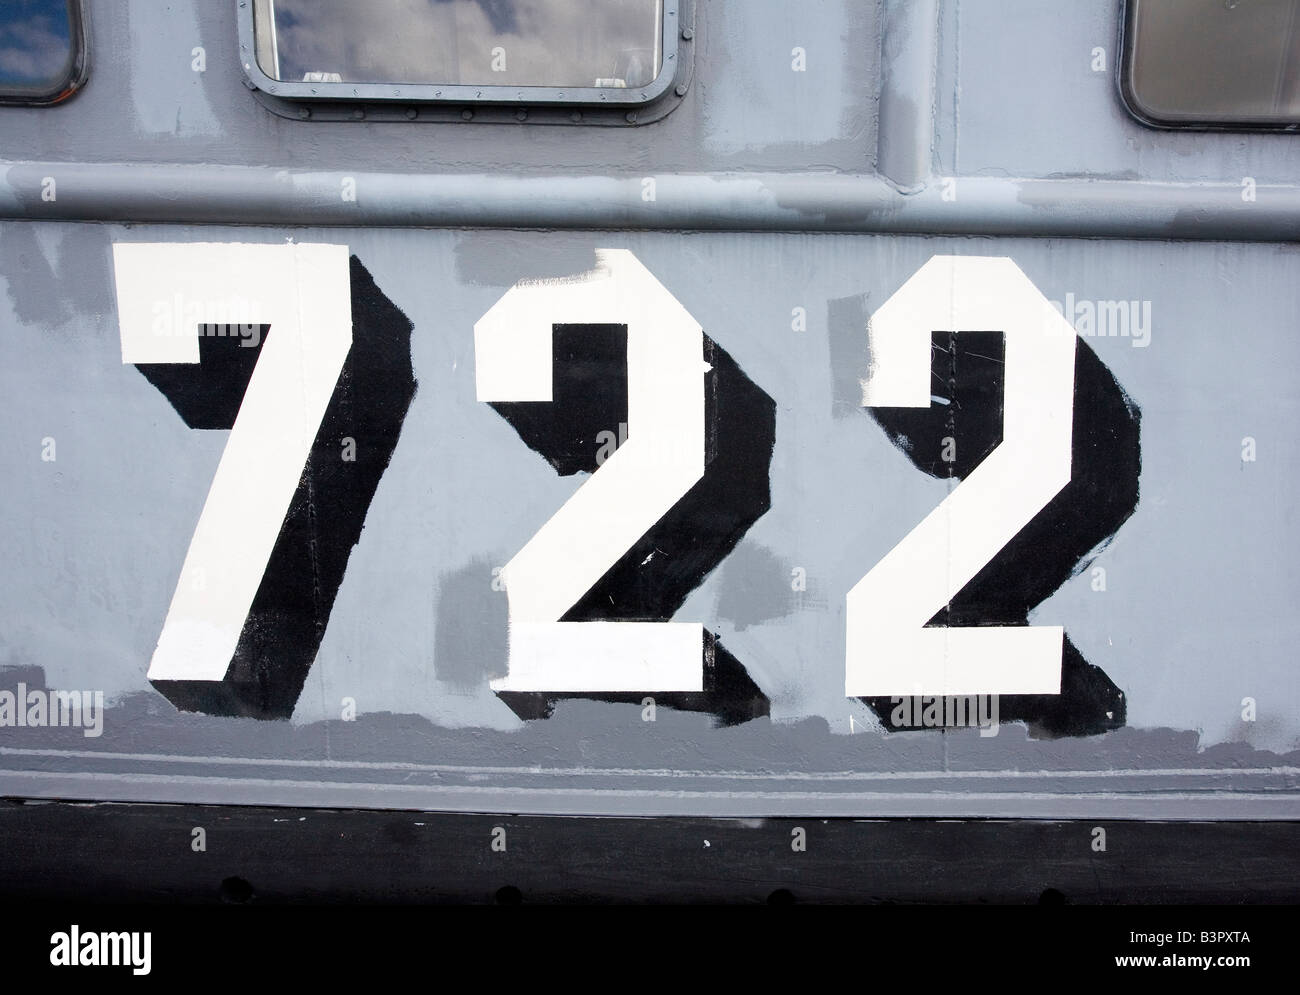 Navy ship number 722 - Stock Image